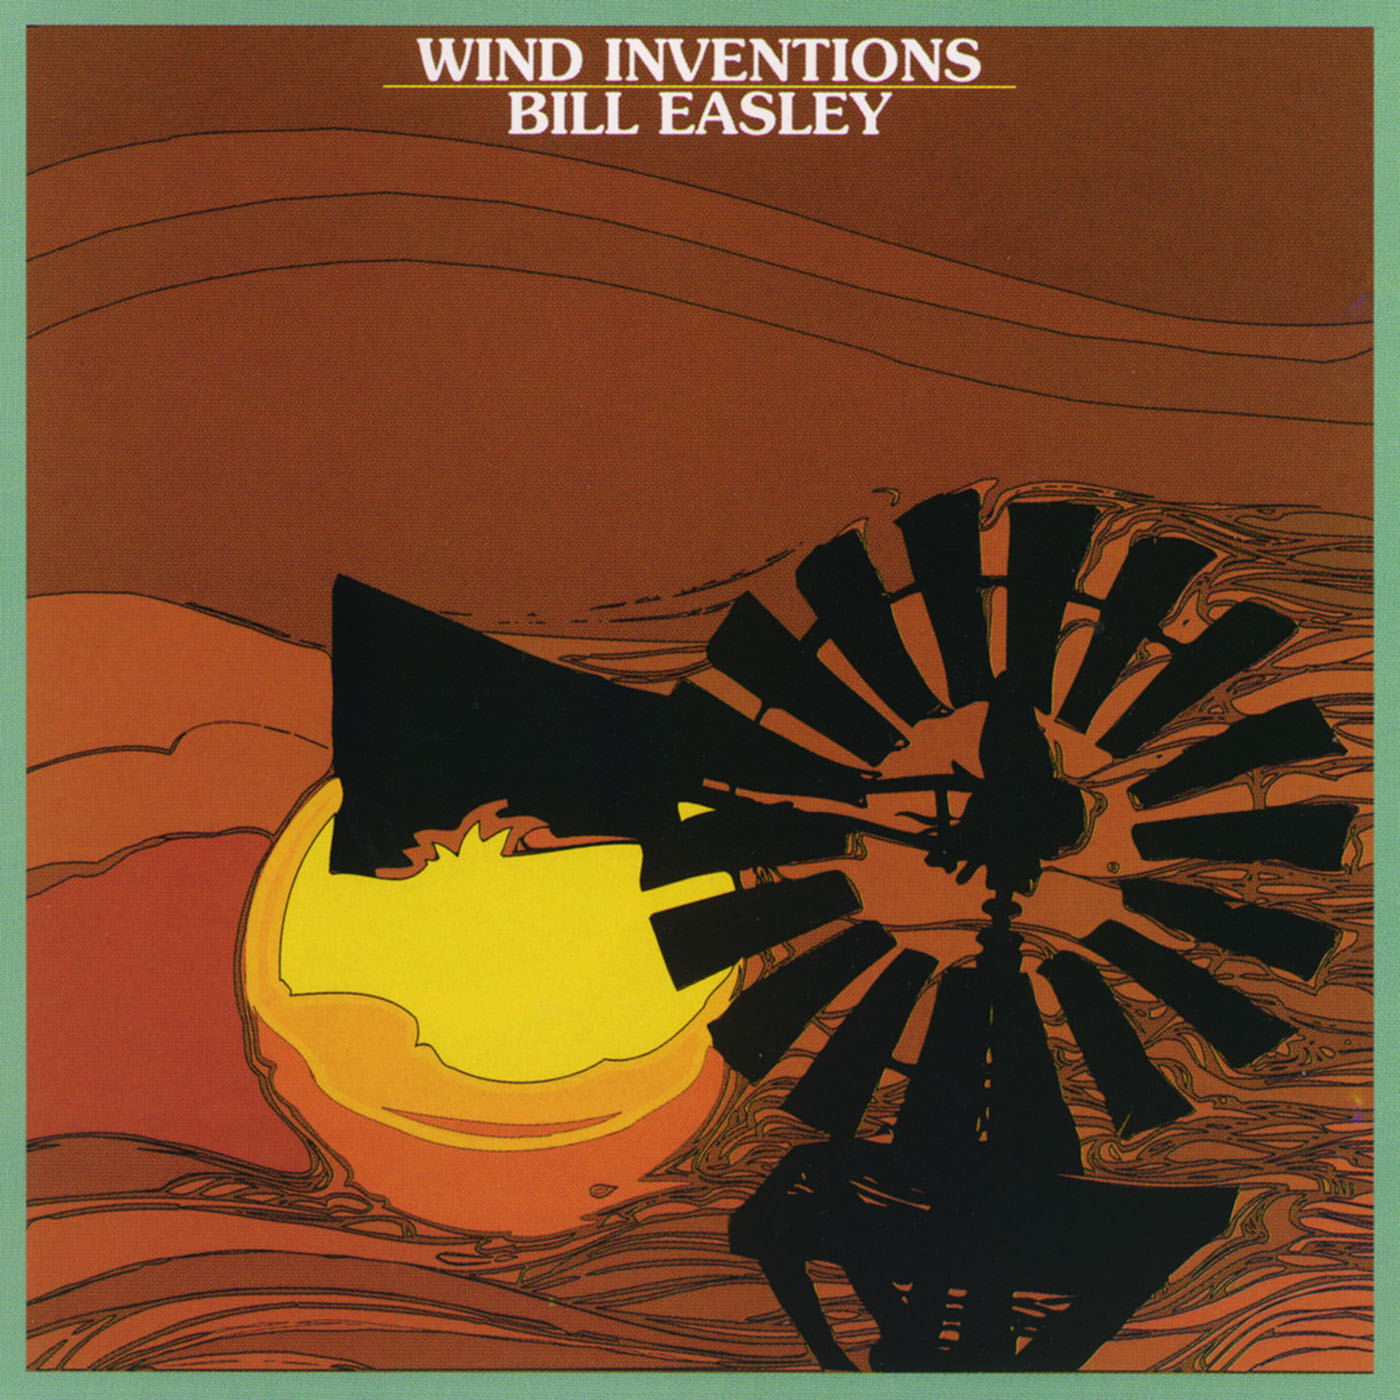 Wind Inventions by Bill Easley cover